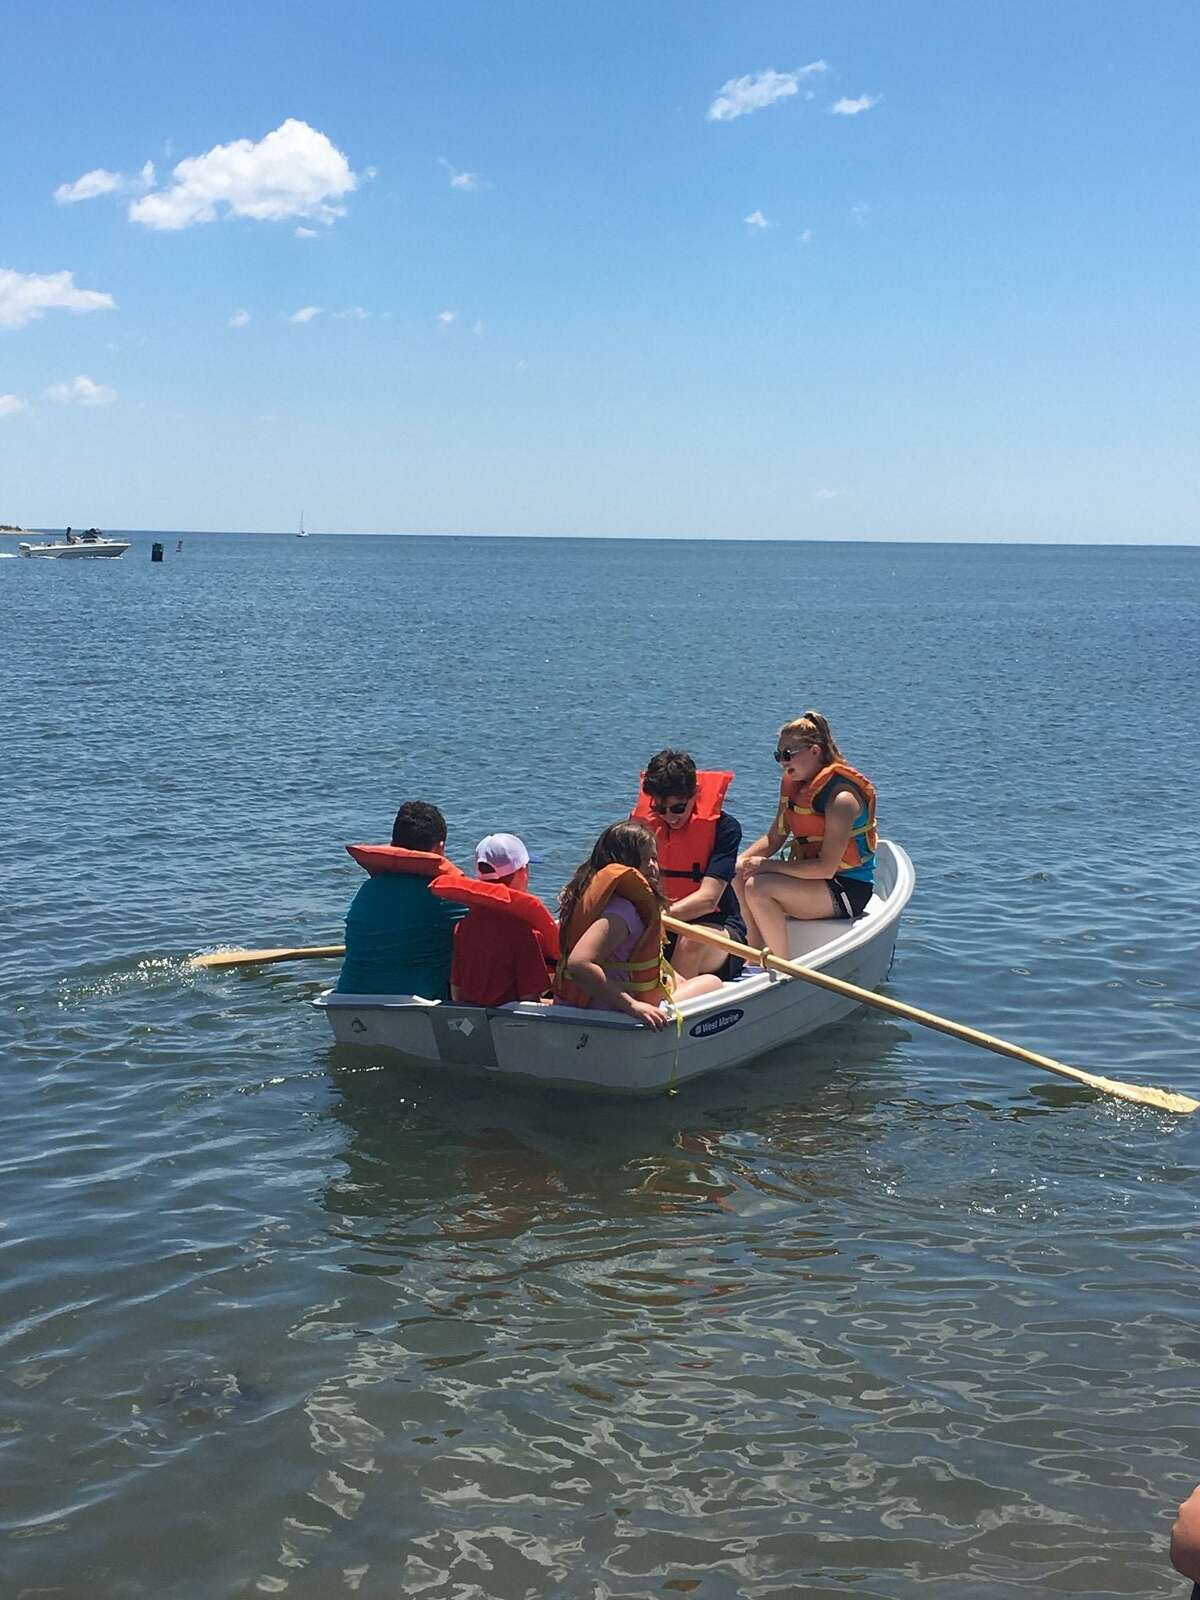 Campers at Guilford Parks & Recreation's Camp Menunkatuck enjoy boating - one of many activities offered for children over the summer.